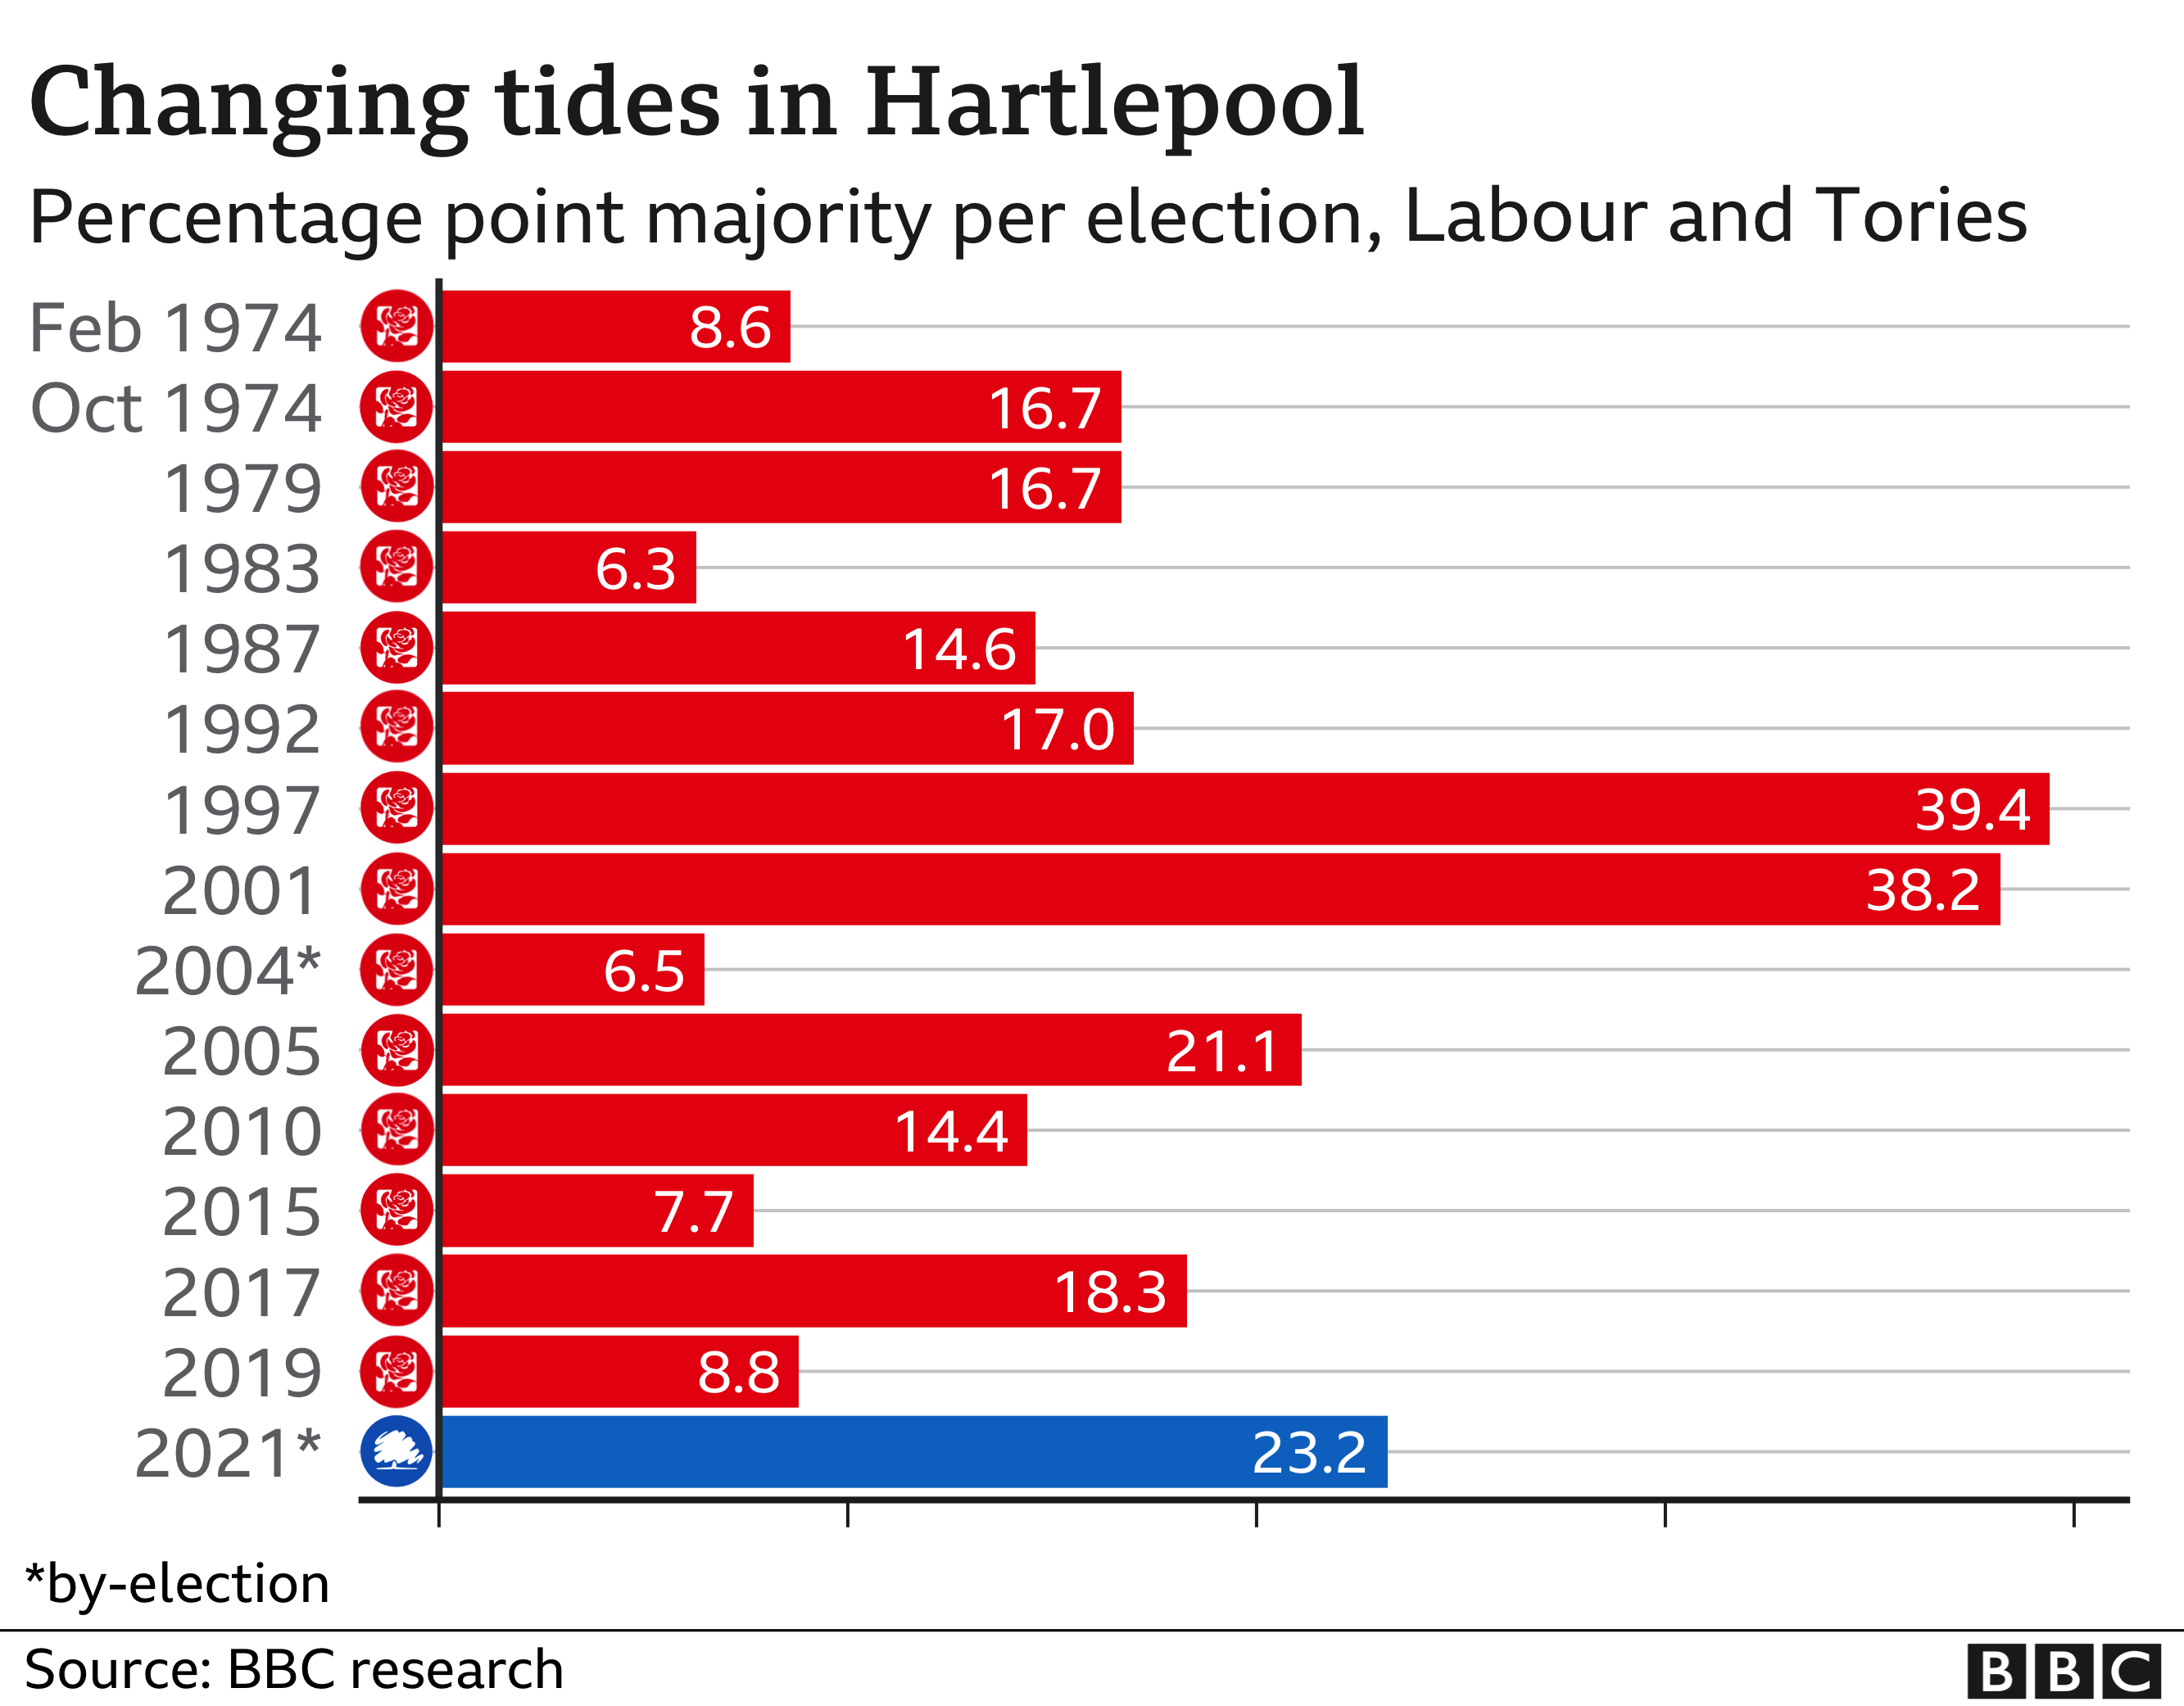 The Conservatives have a majority of 23.2% in Hartlepool. In 1997 Labour were 39.4 points ahead